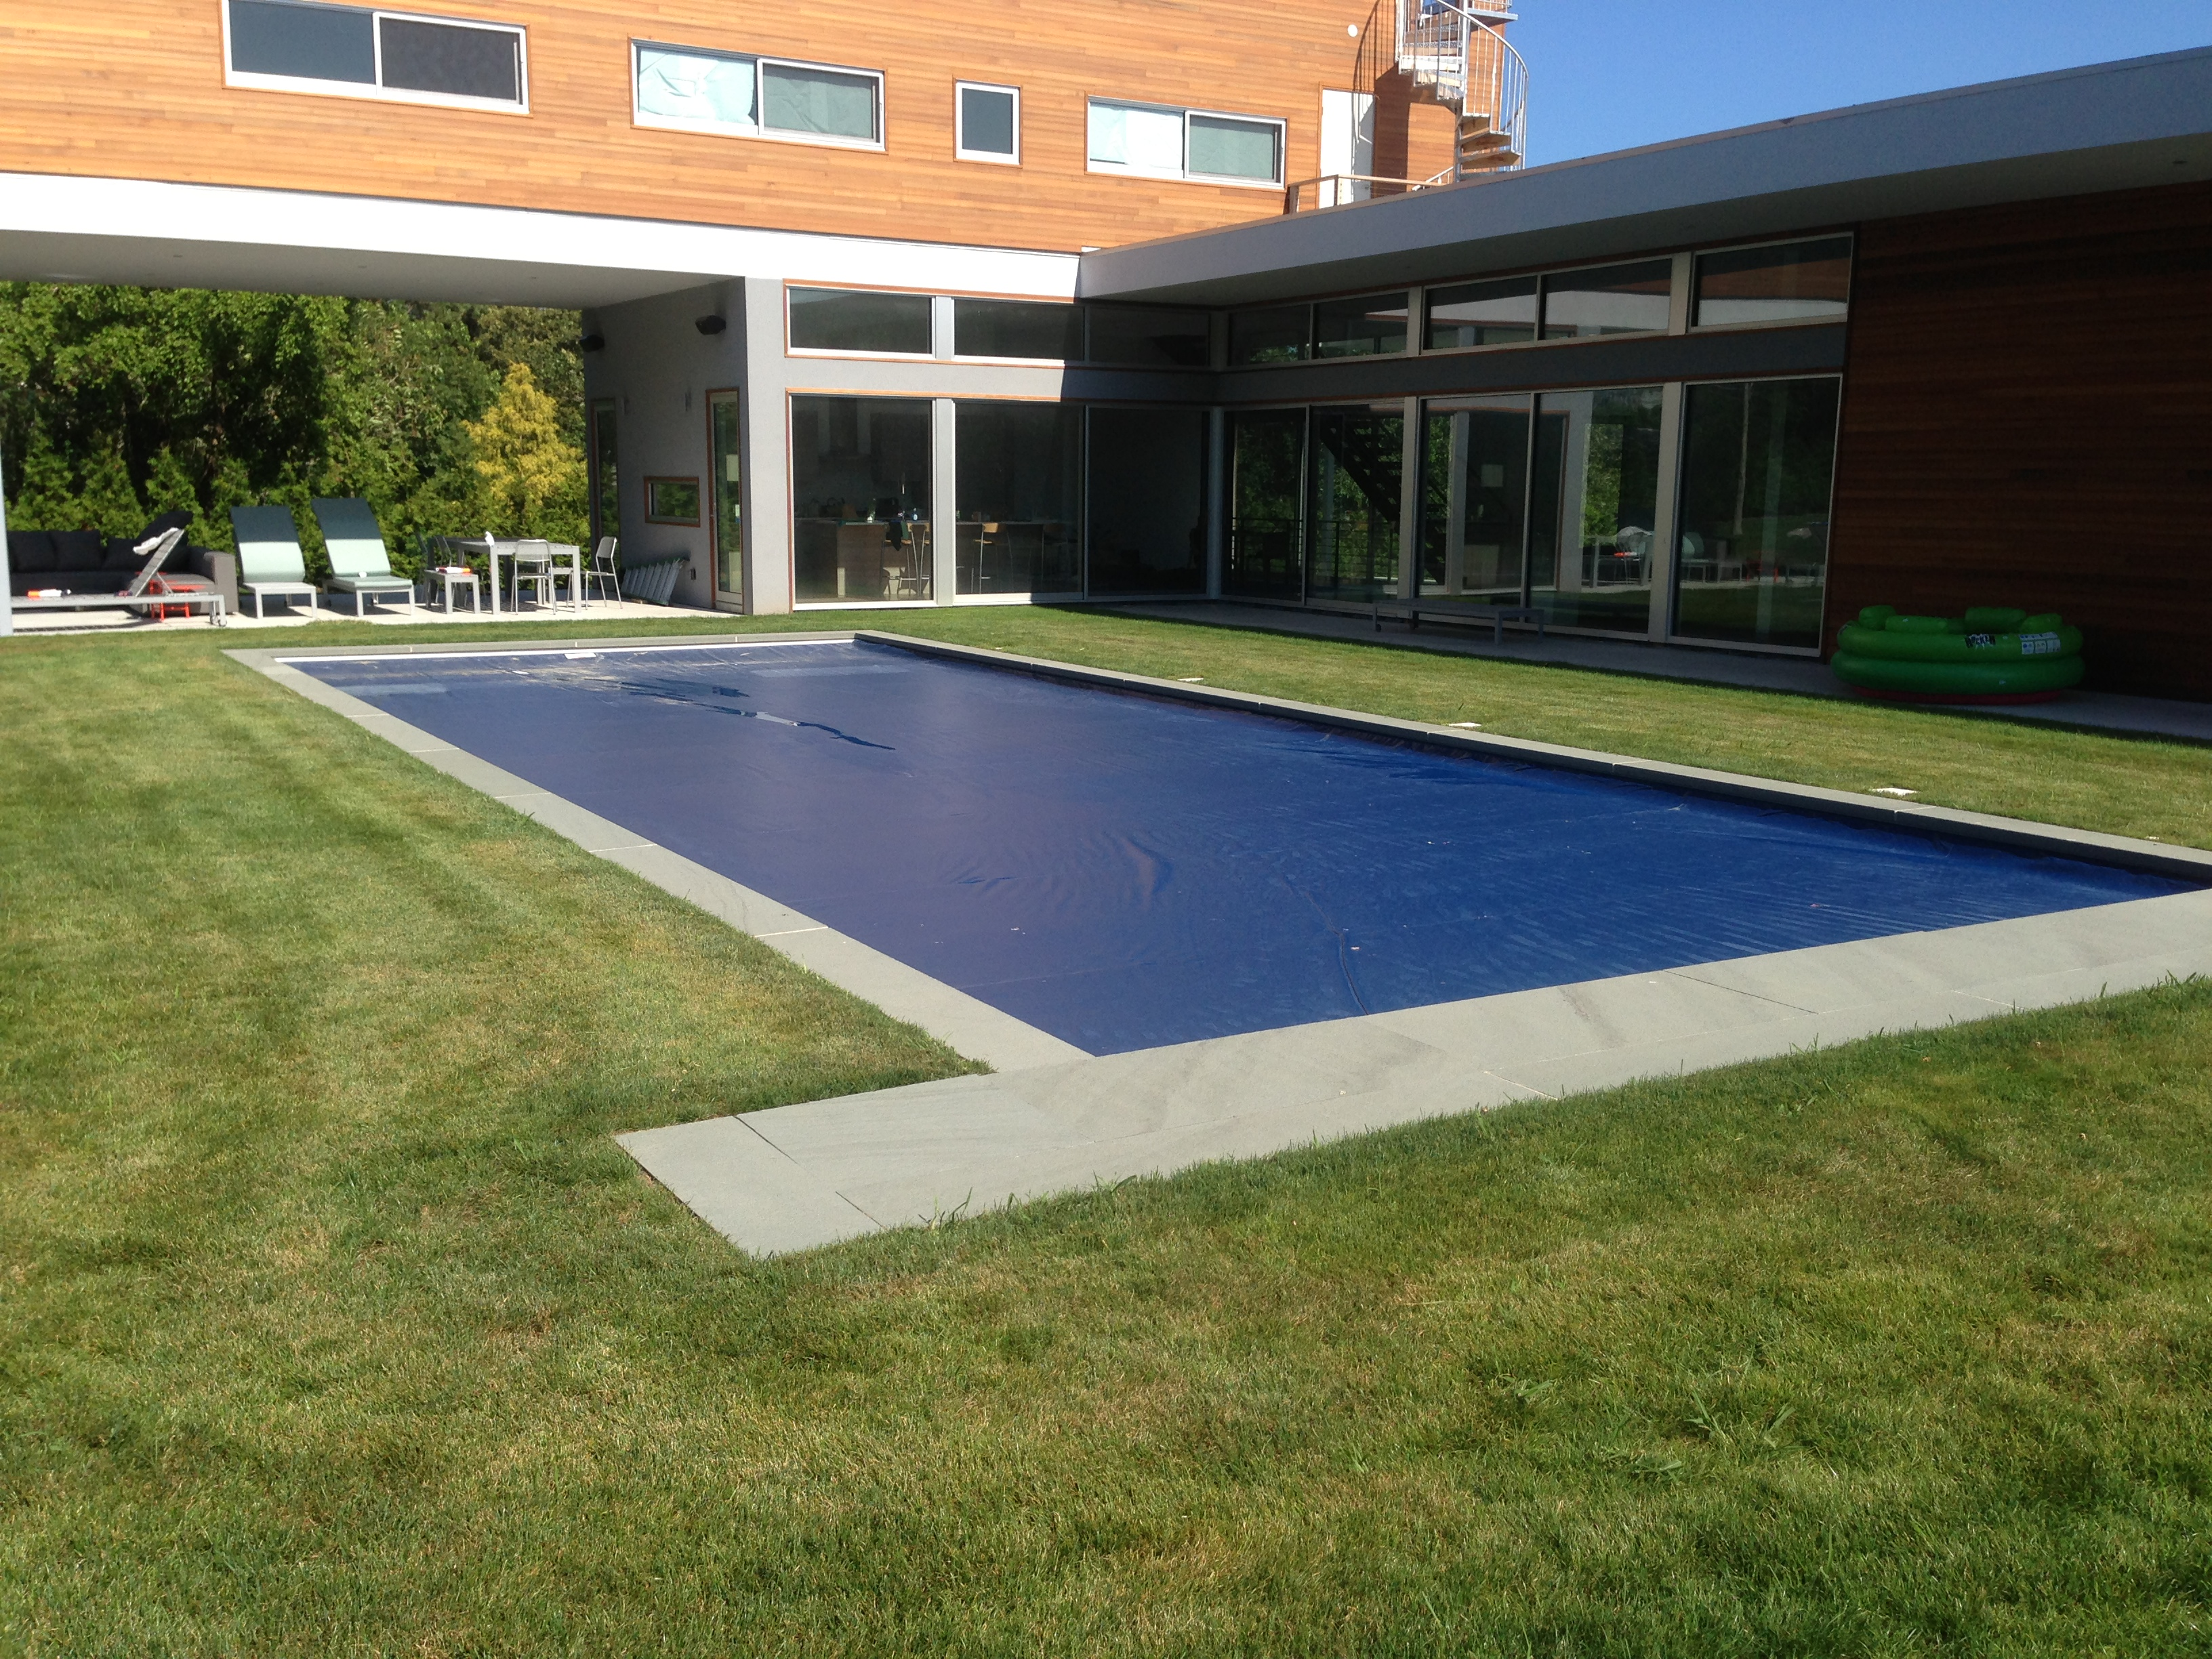 Image Result For Poolcovers